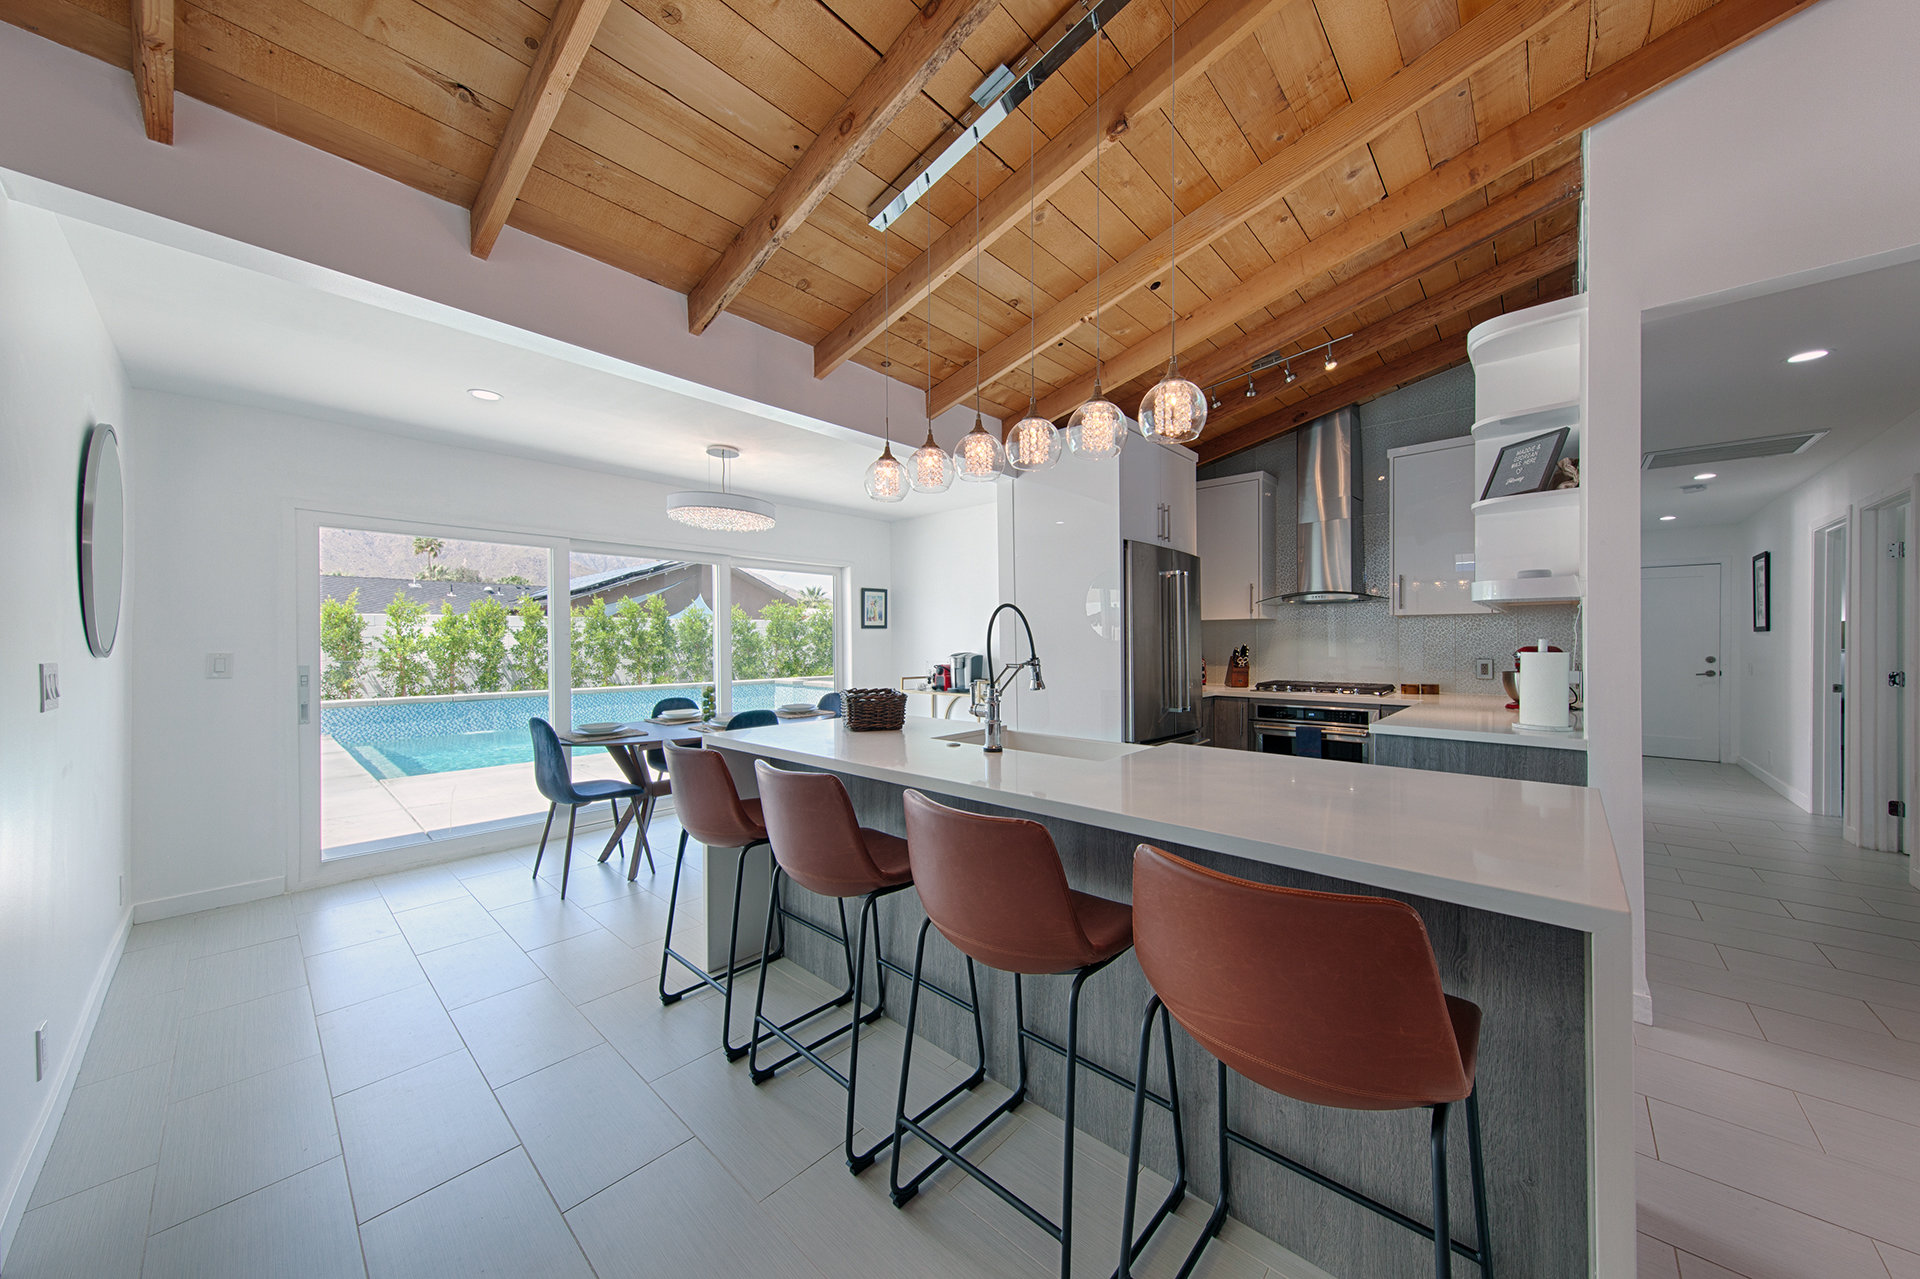 Remodled kitchen with leather stools in a home in Palm Springs, California